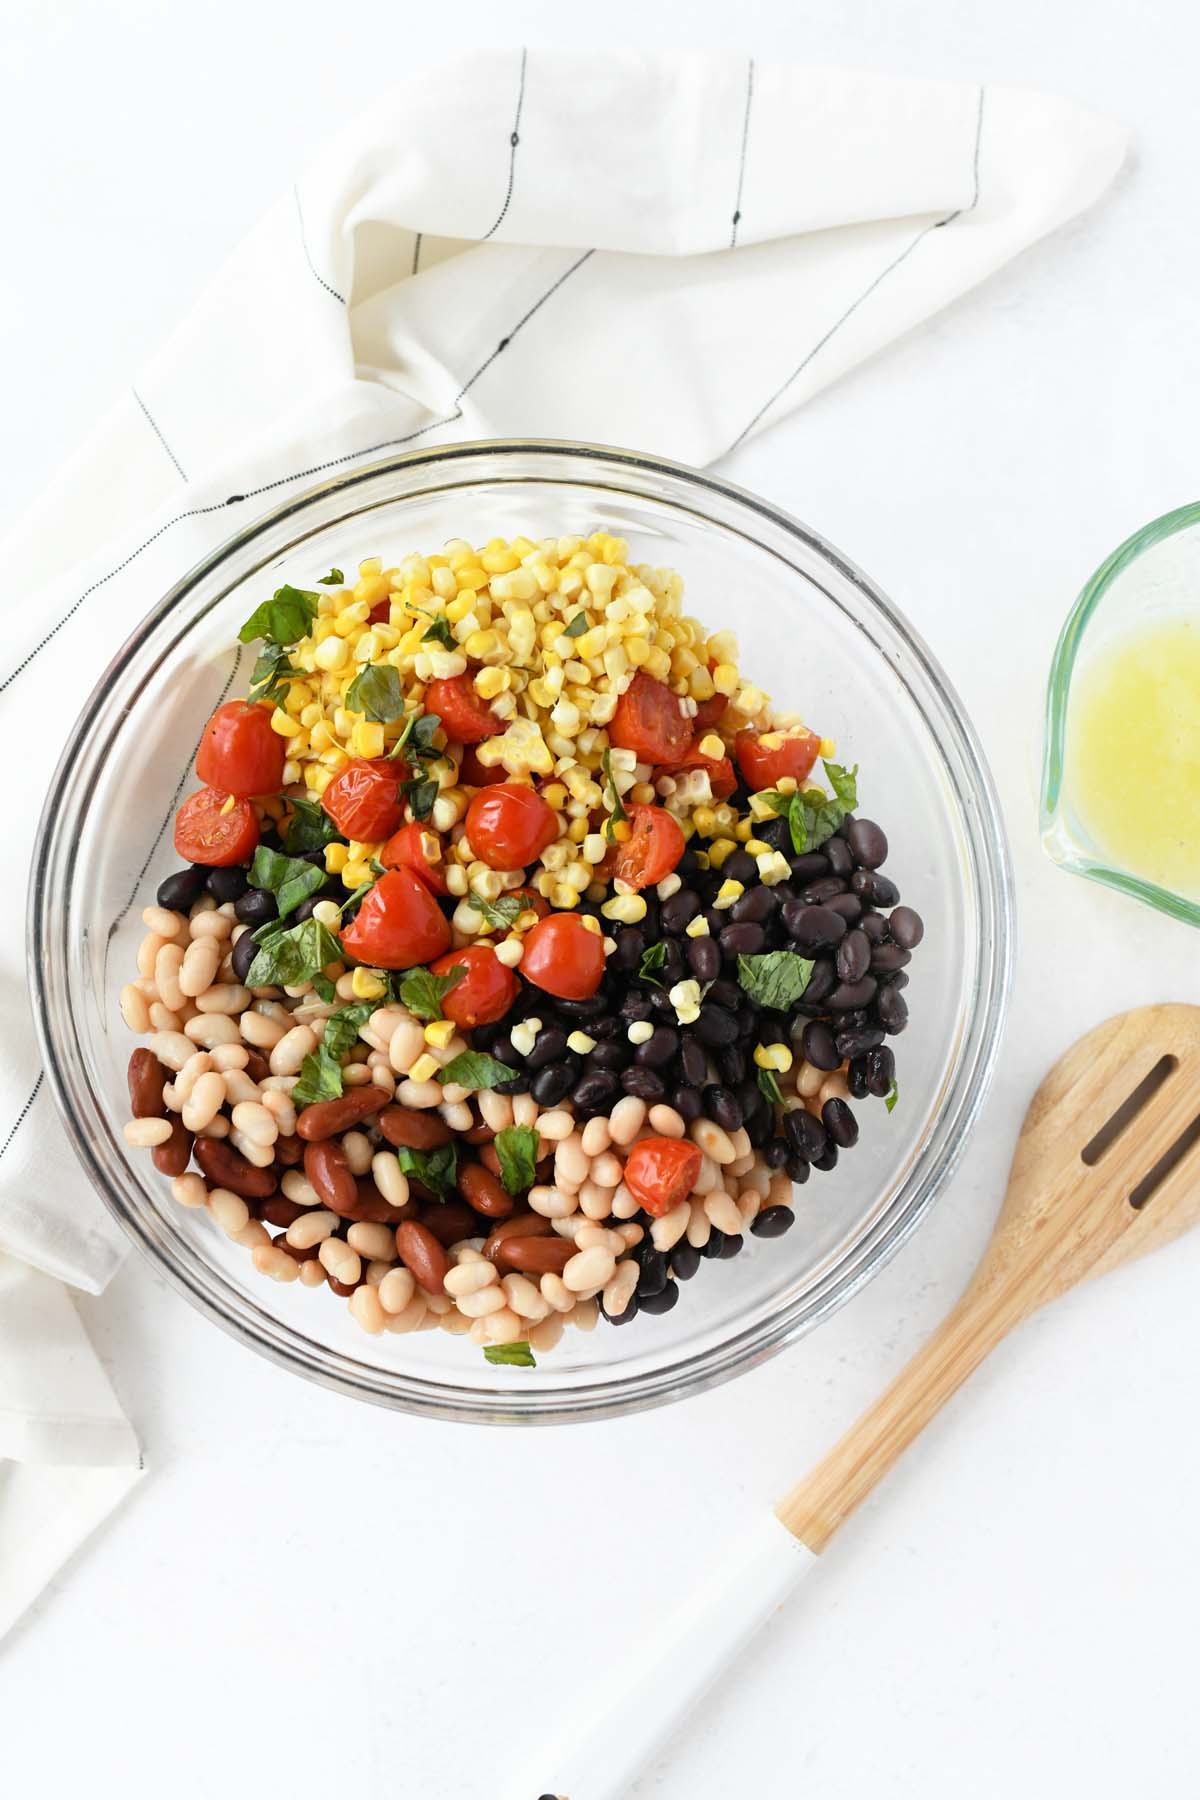 3 bean salad ingredients in a glass bowl.